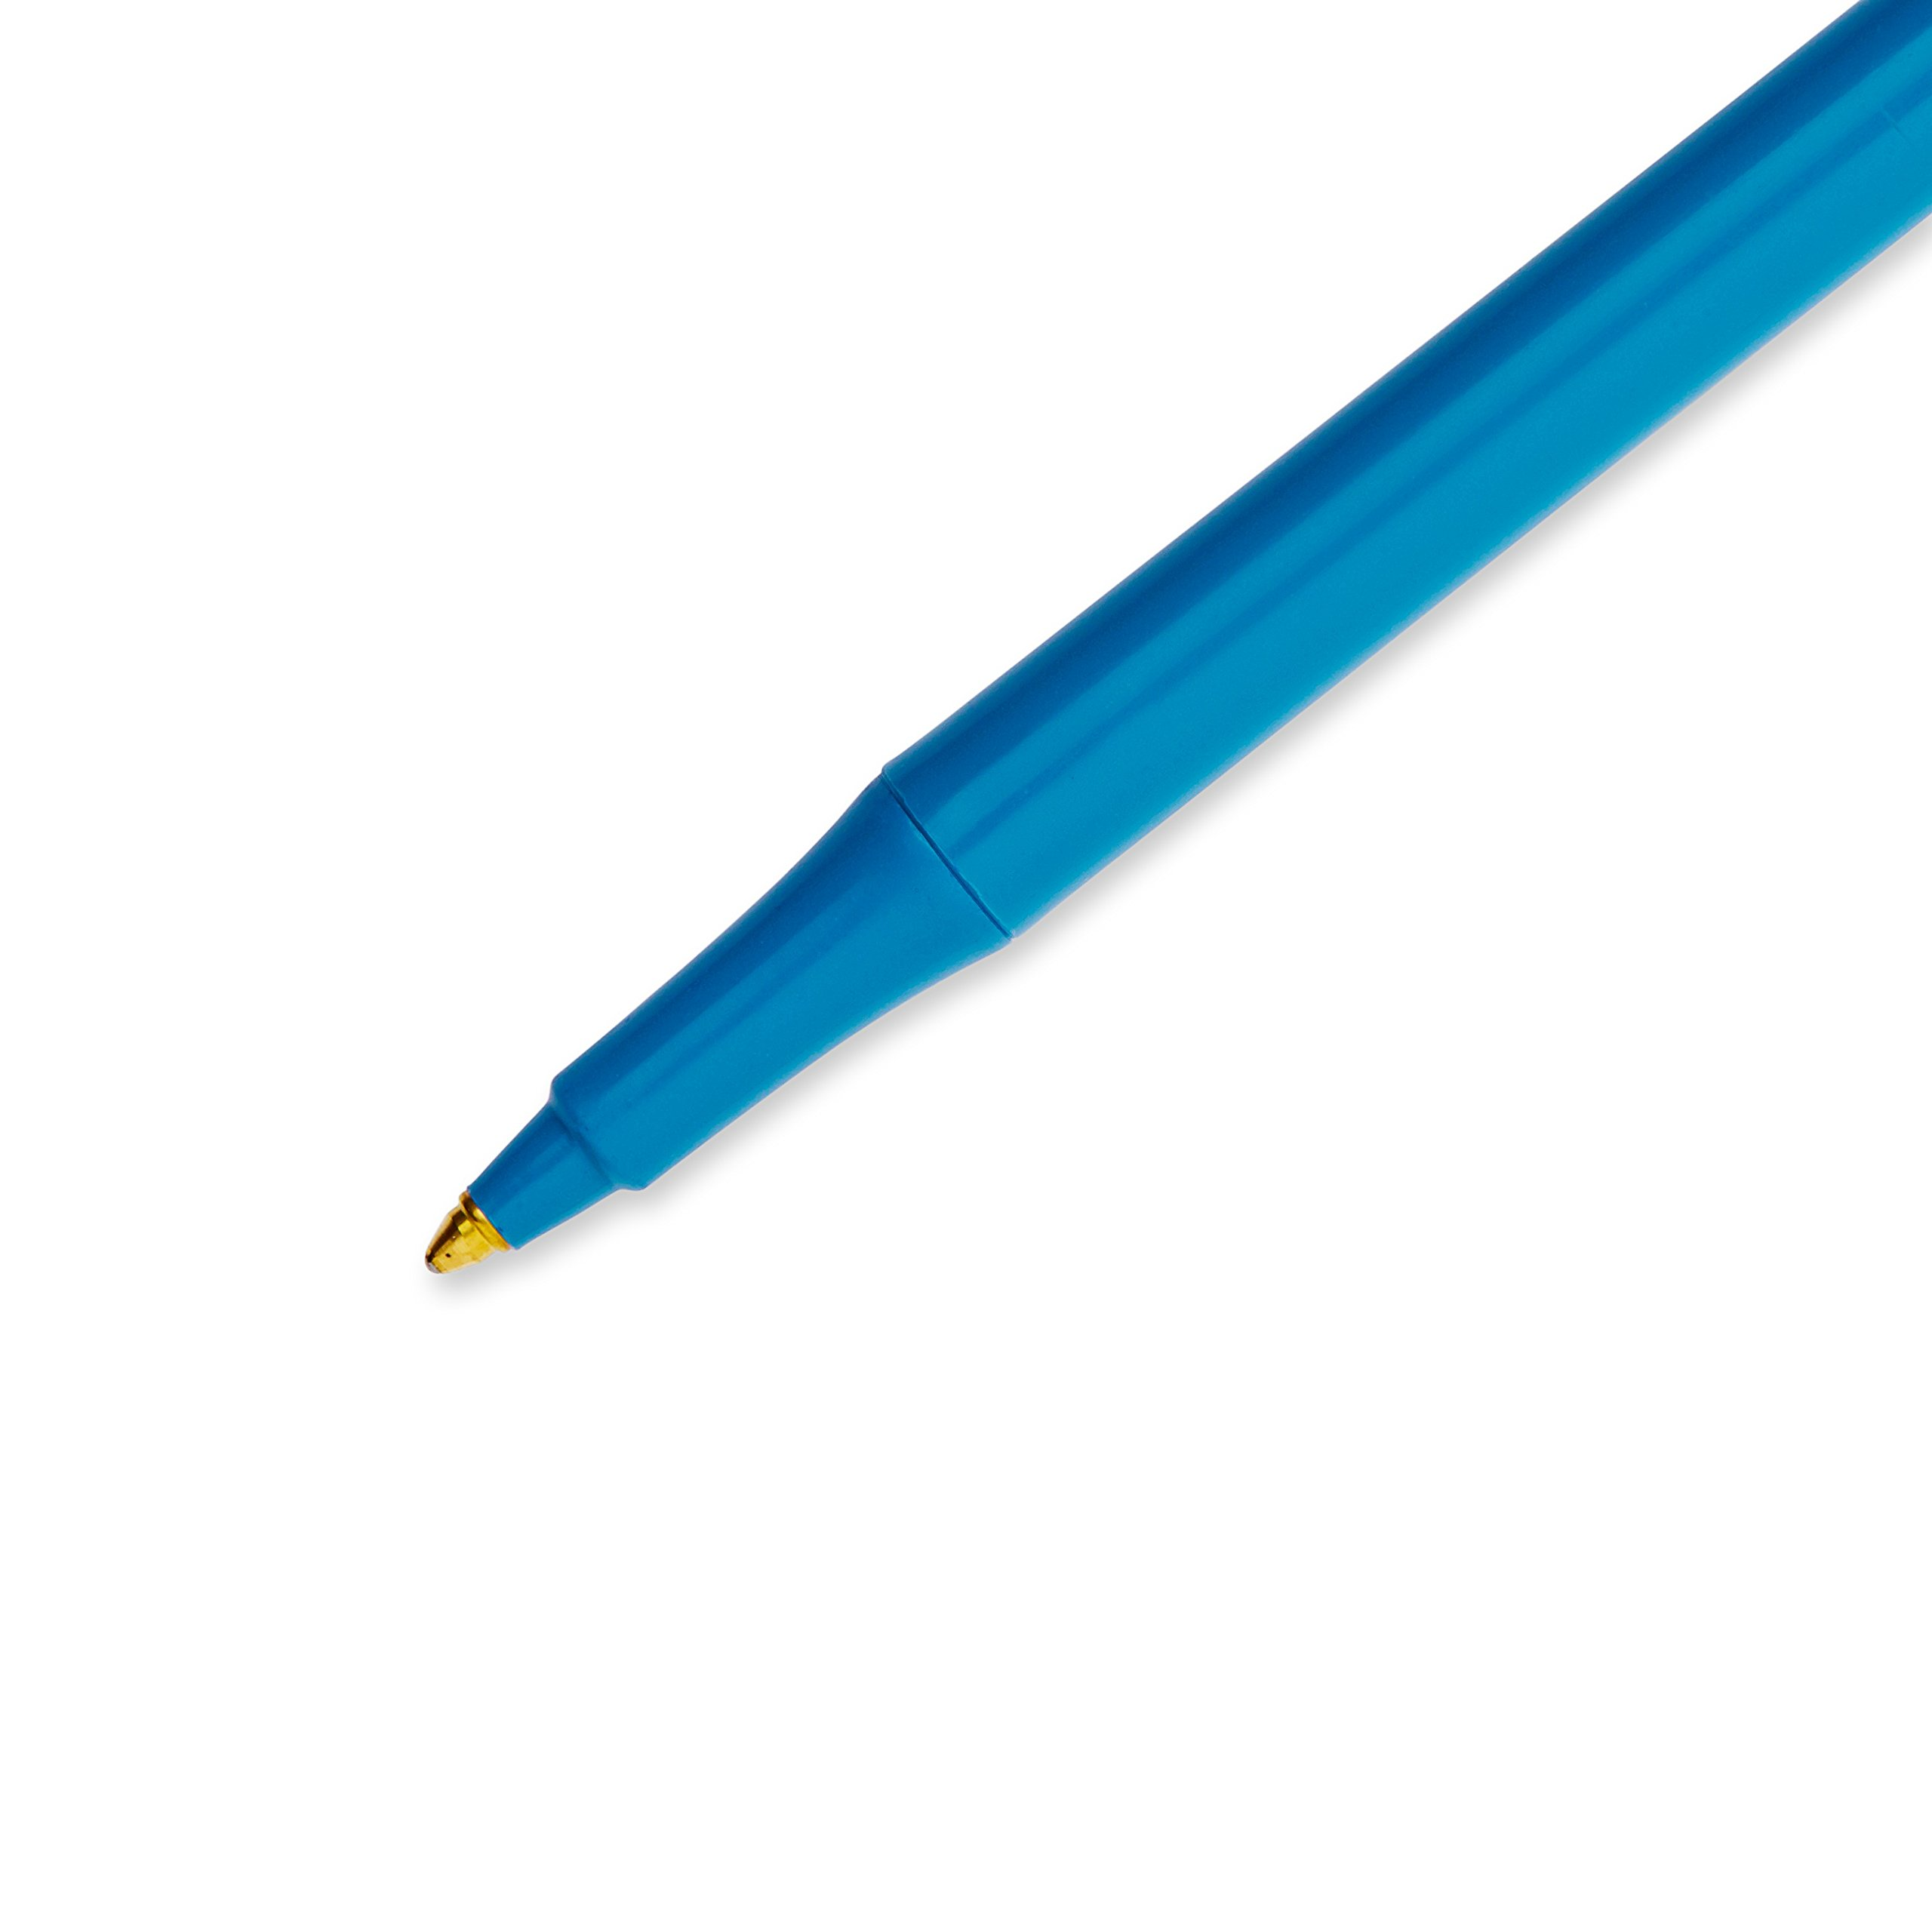 Paper Mate Write Bros Ballpoint Pens, Medium Point (1.0 mm), Blue, 60 Count by Paper Mate (Image #3)